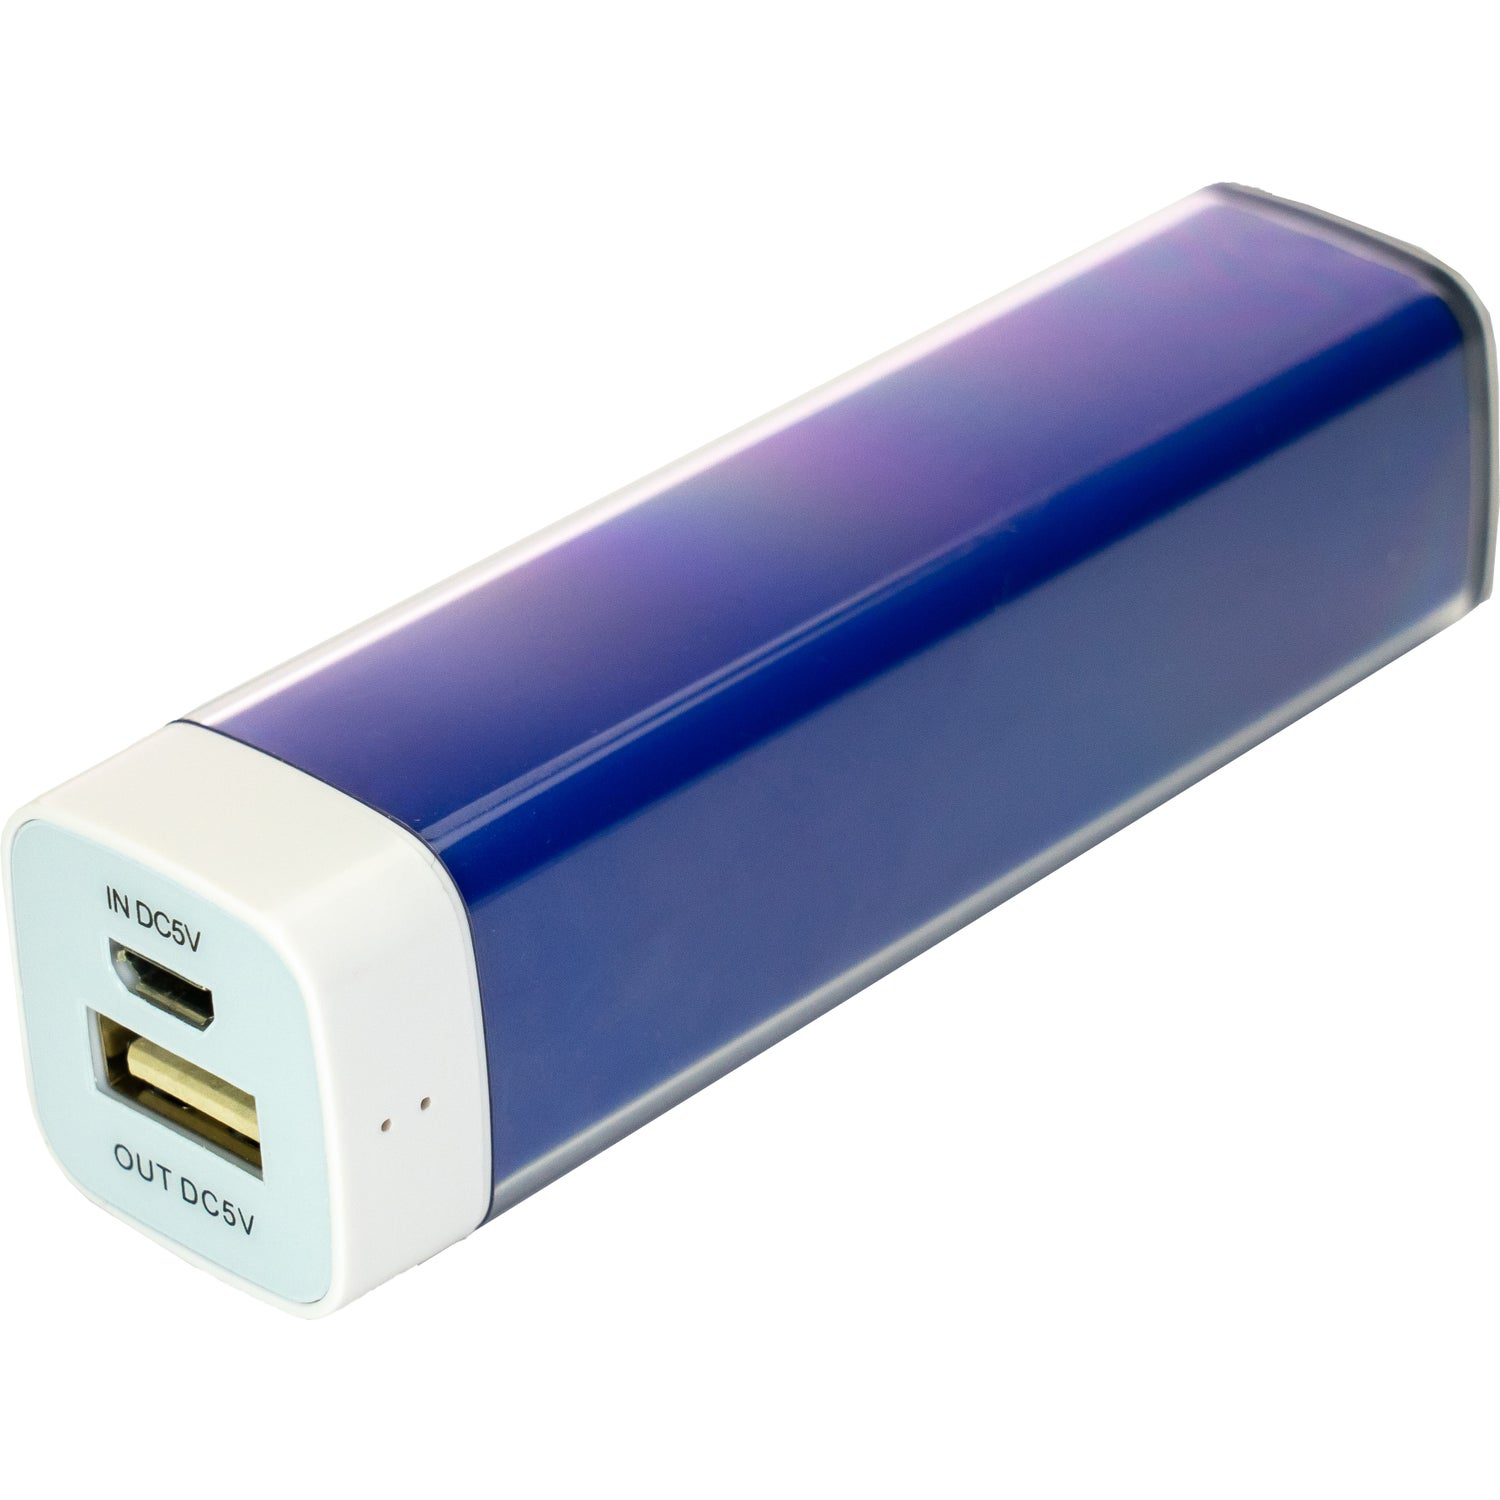 Power Bank Charger >> Charge It Up Power Bank Charger Mobile Devices